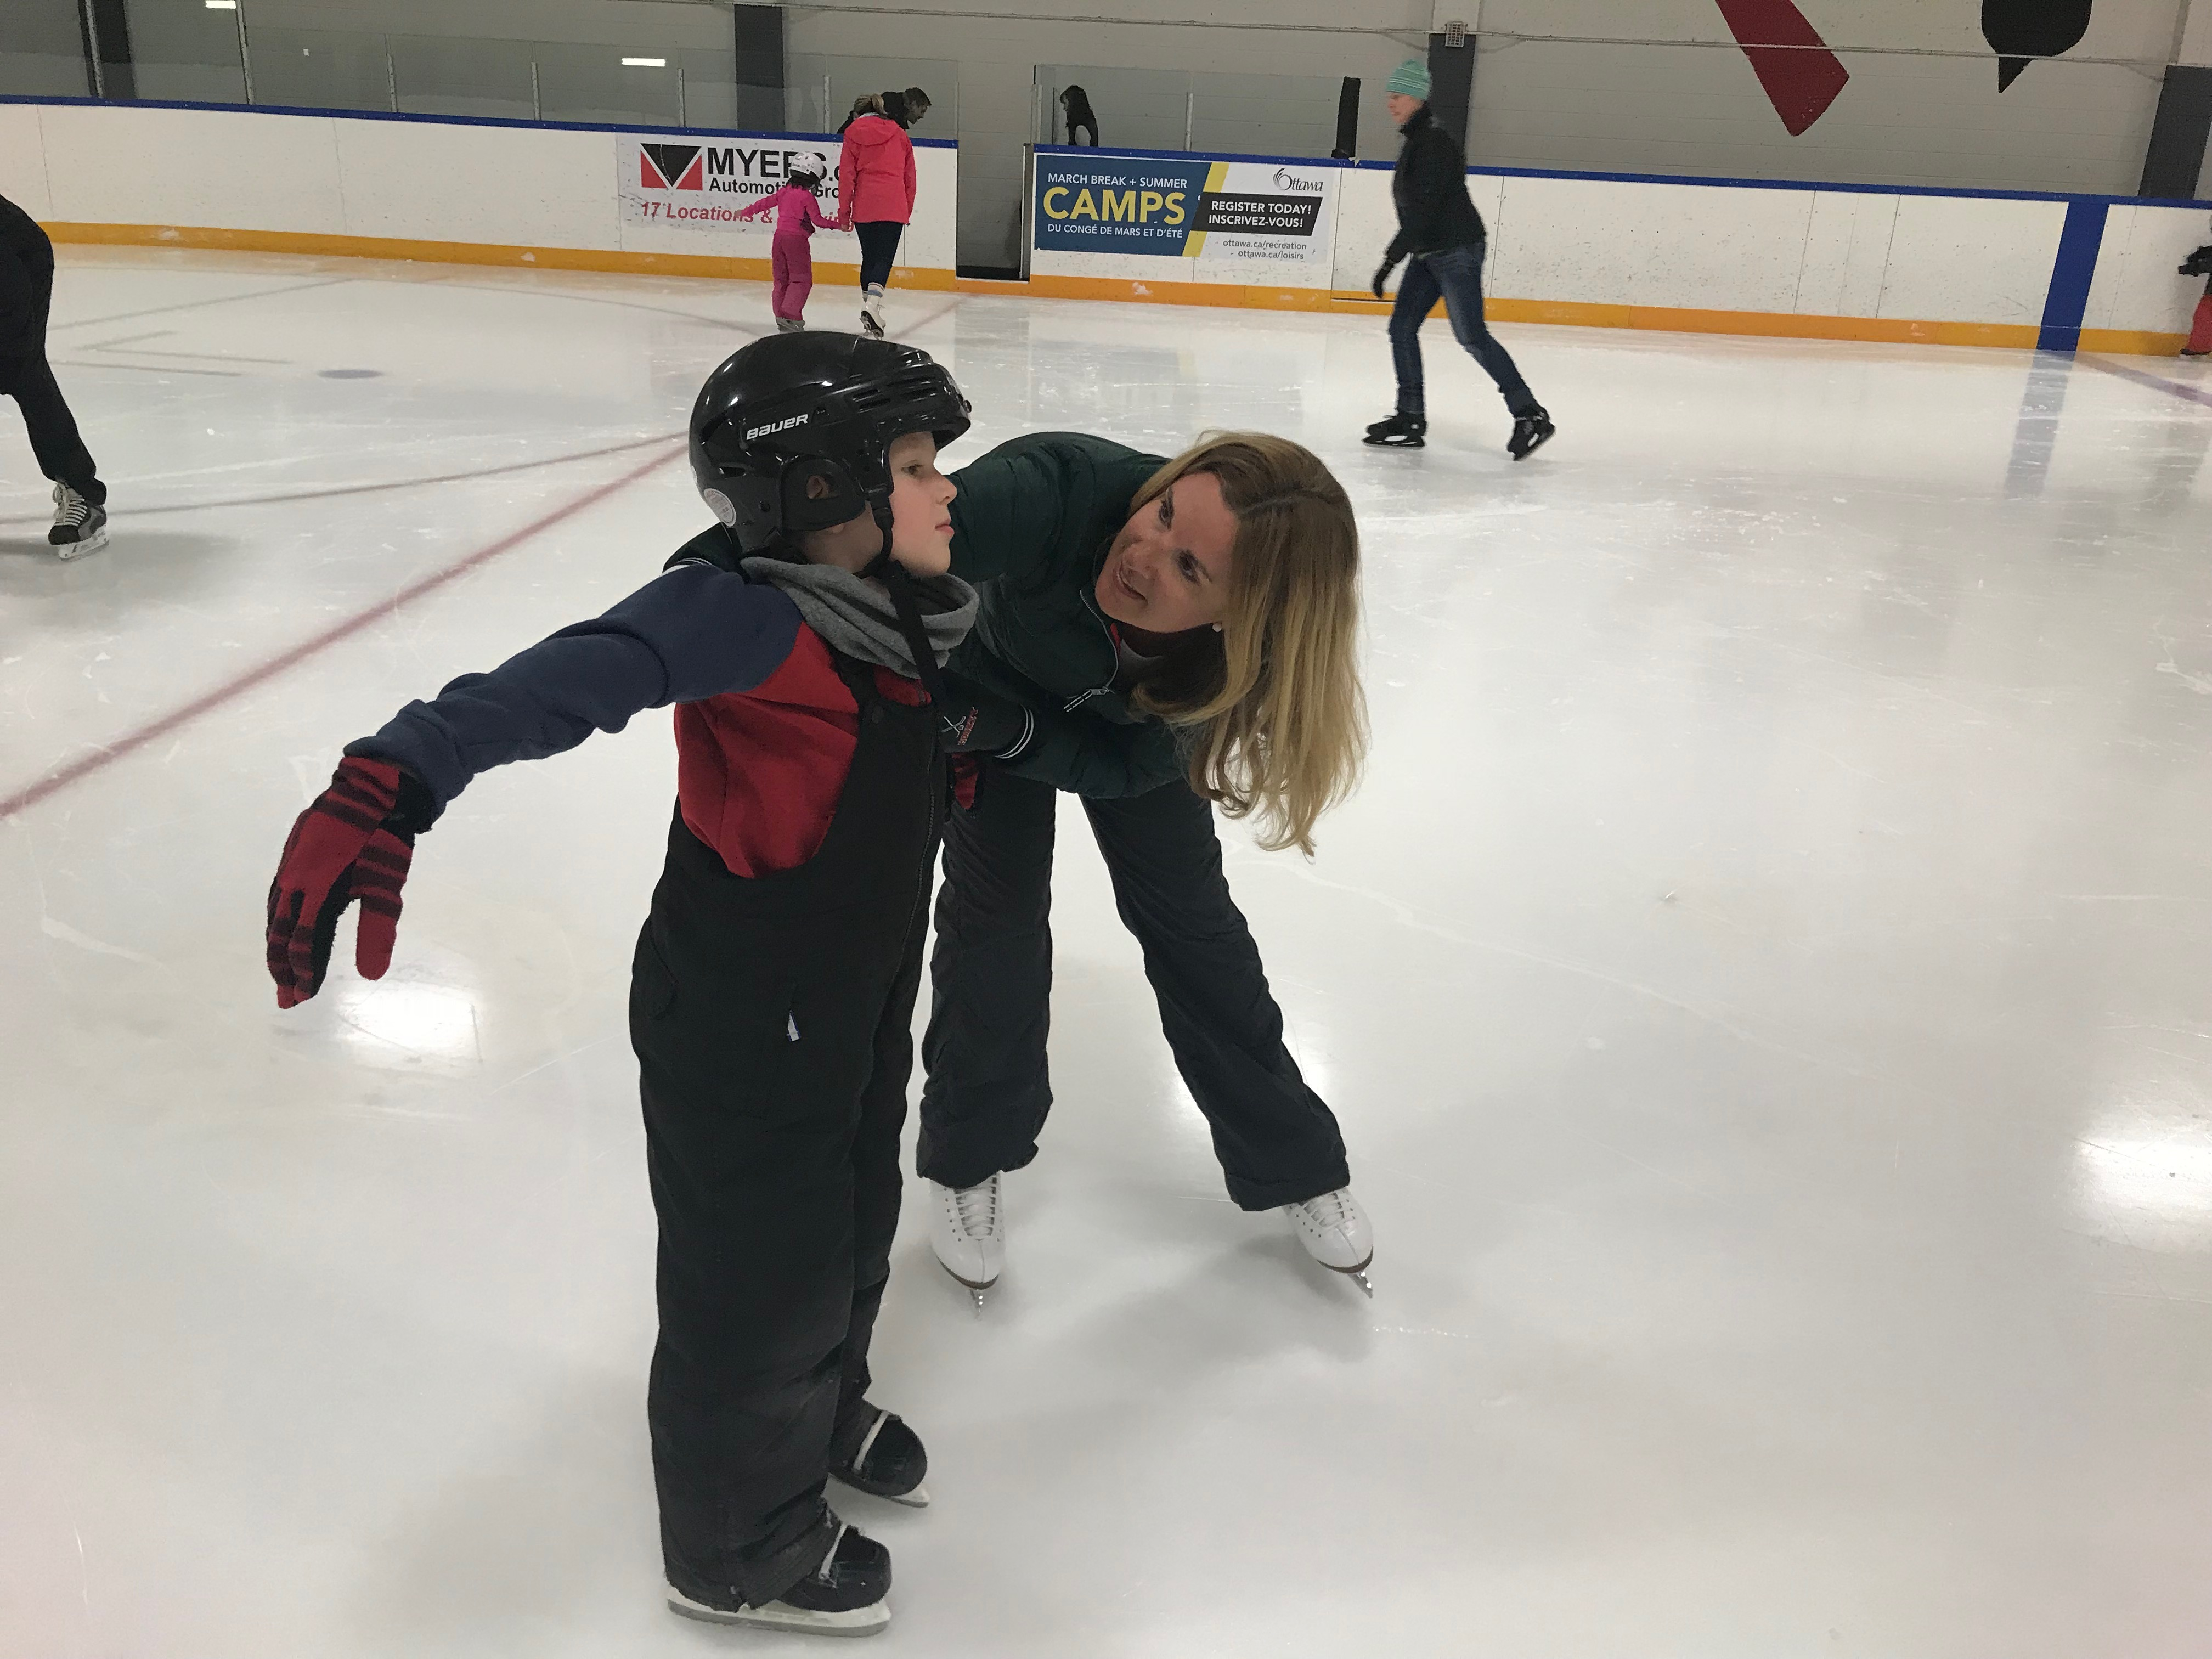 Taking to the Ice for Birthday Party Fun - Embracing Ottawa